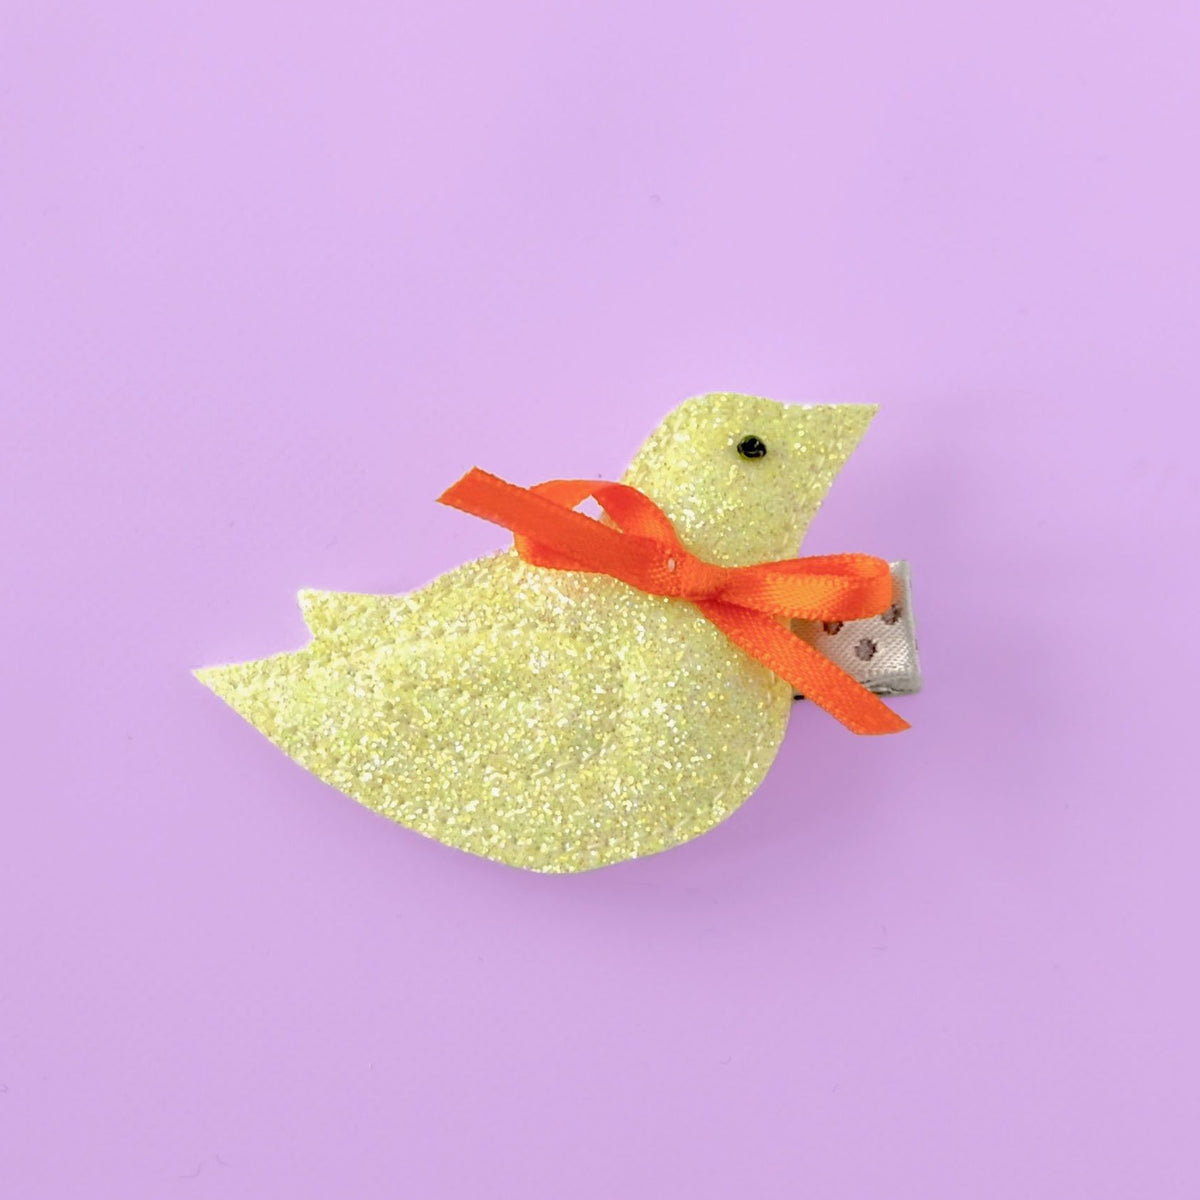 small bird hair clip in yellow on purple background